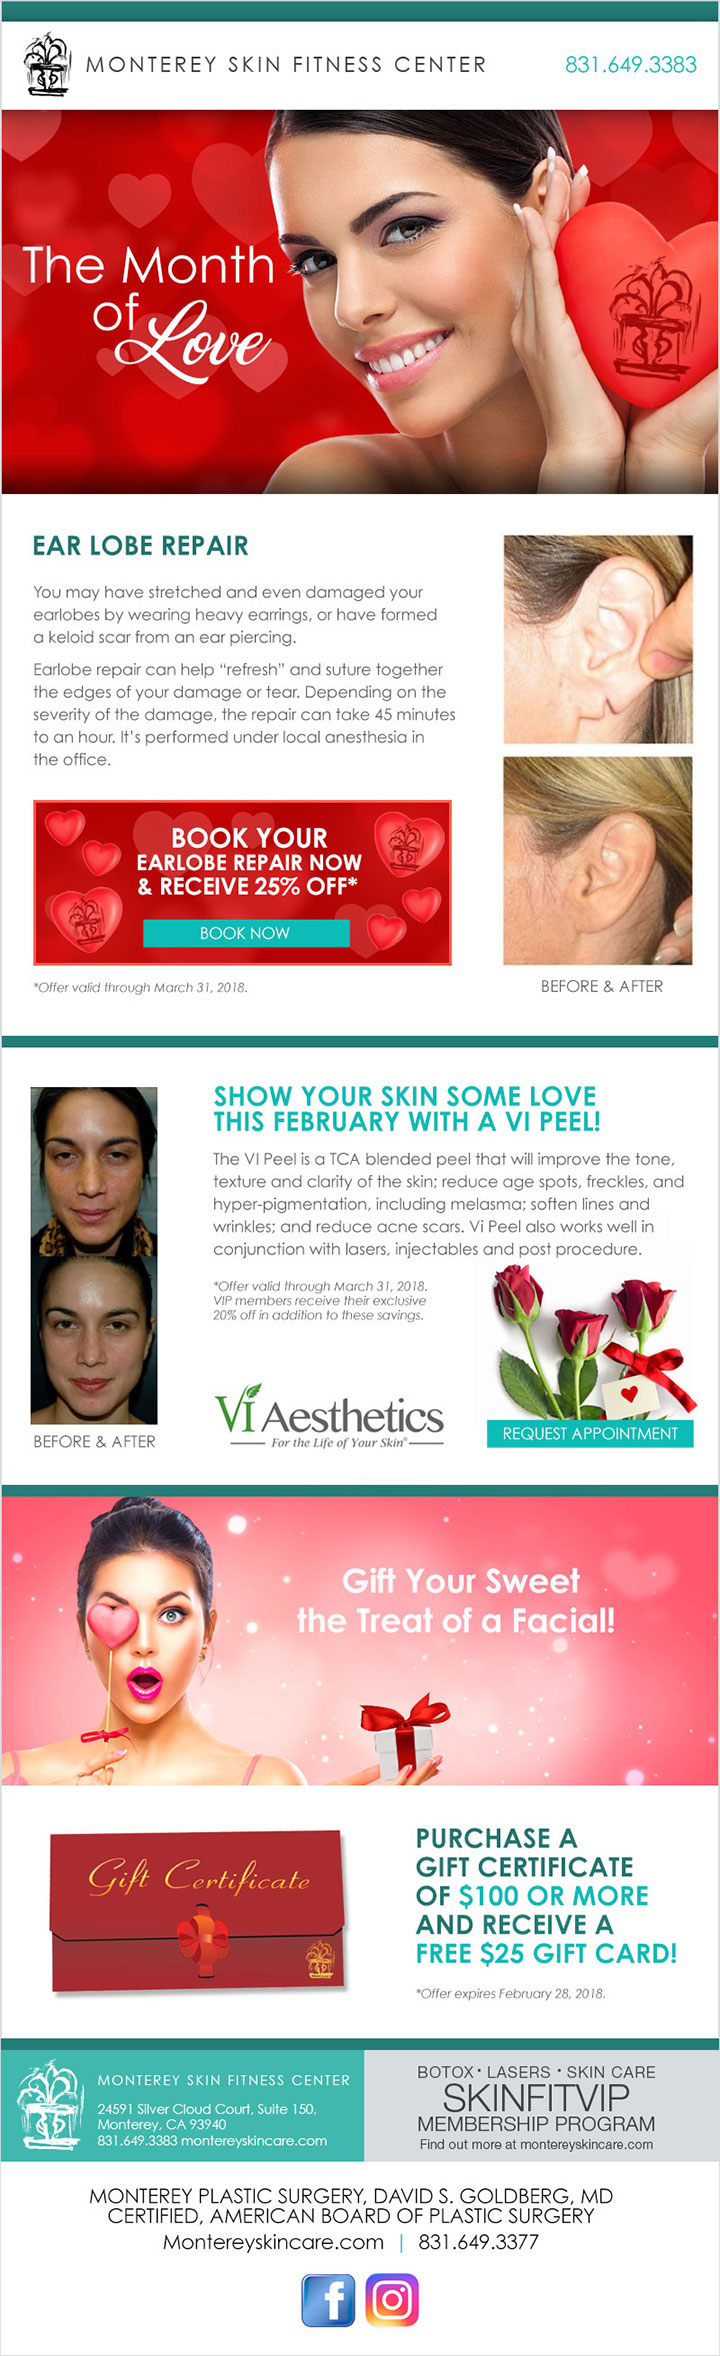 Plastic Surgeon Surgery Email Marketing Blast